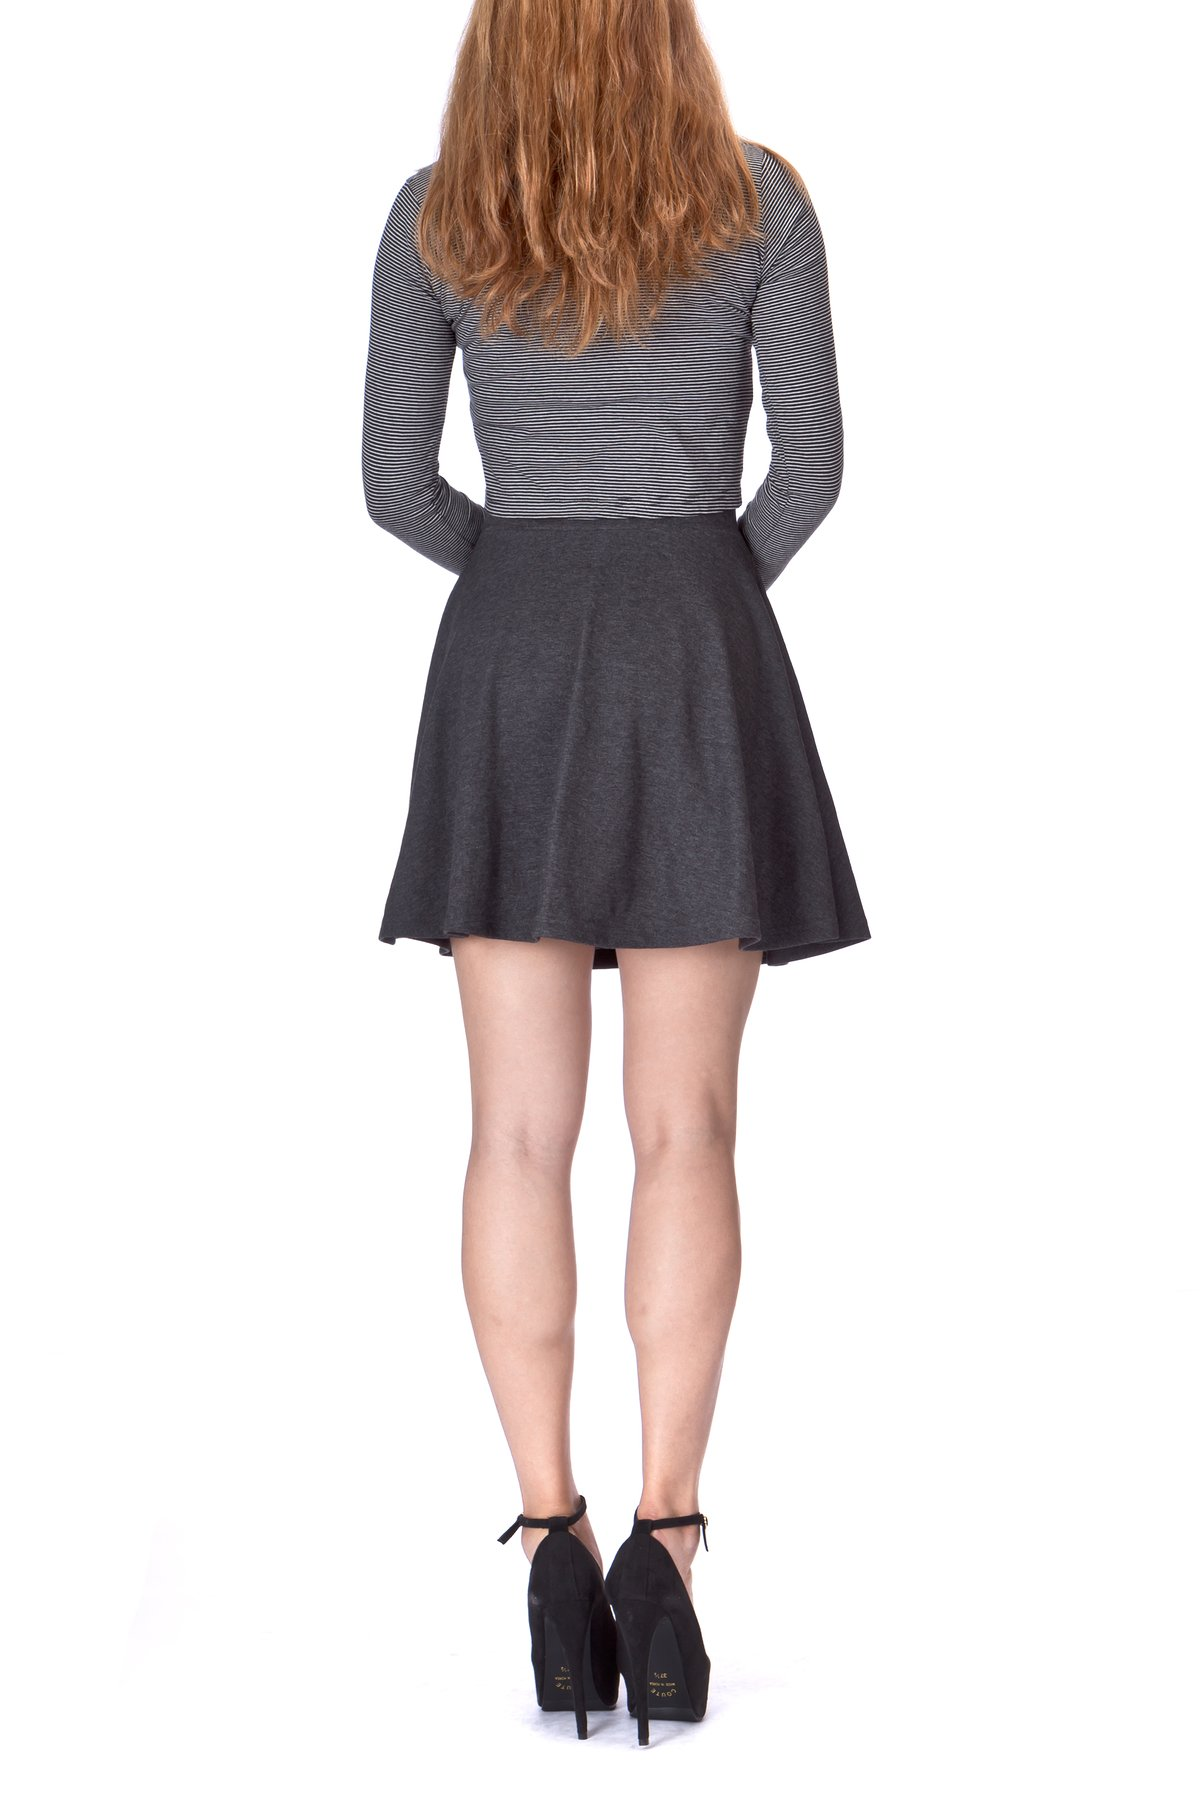 Basic Solid Stretchy Cotton High Waist A line Flared Skater Mini Skirt Charcoal 05